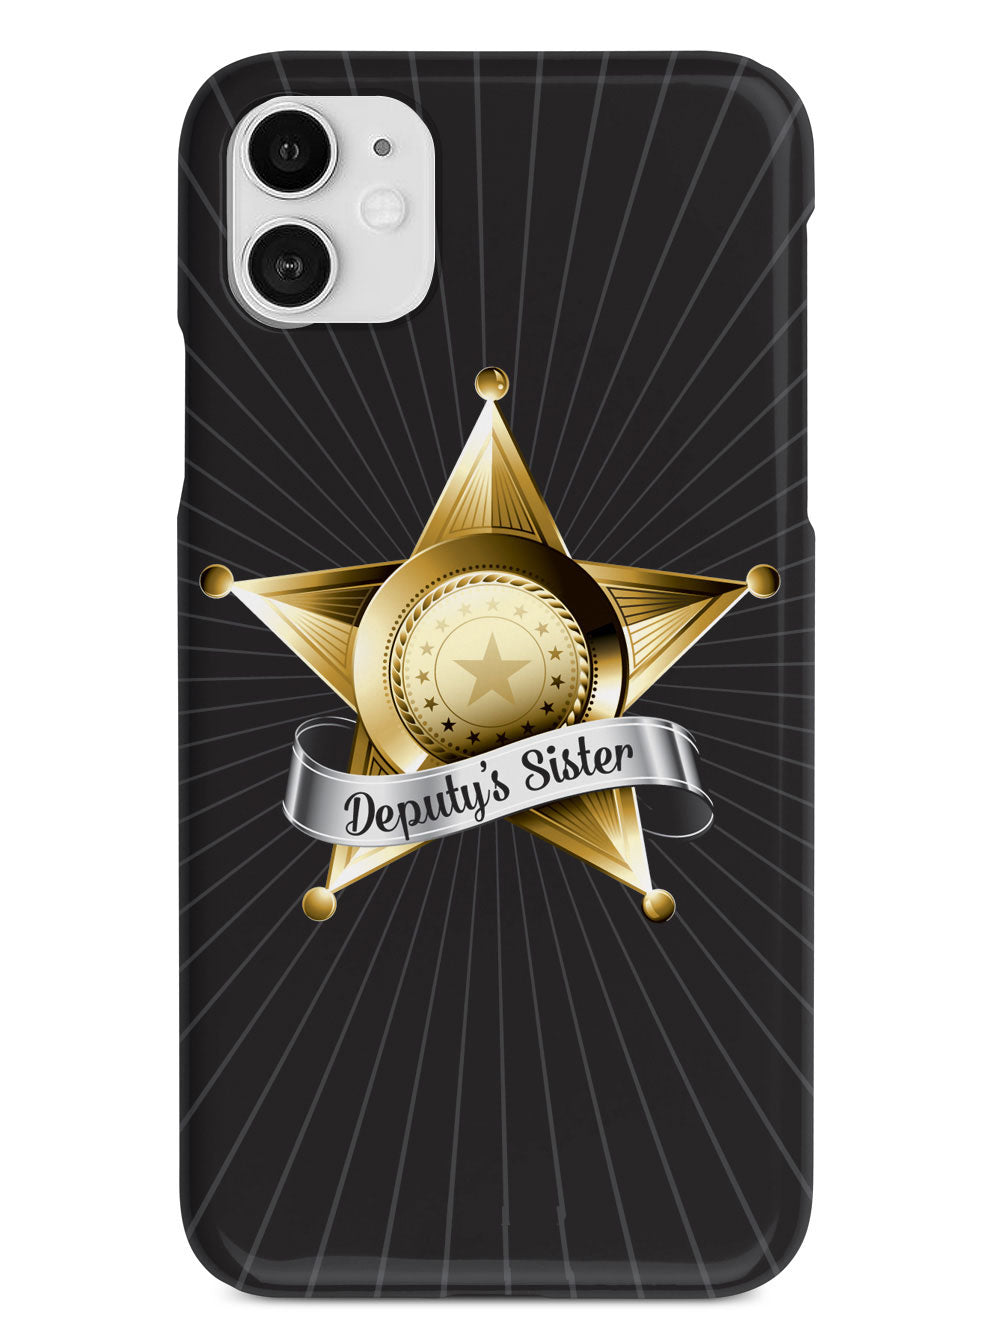 Deputy's Sister Badge  Case